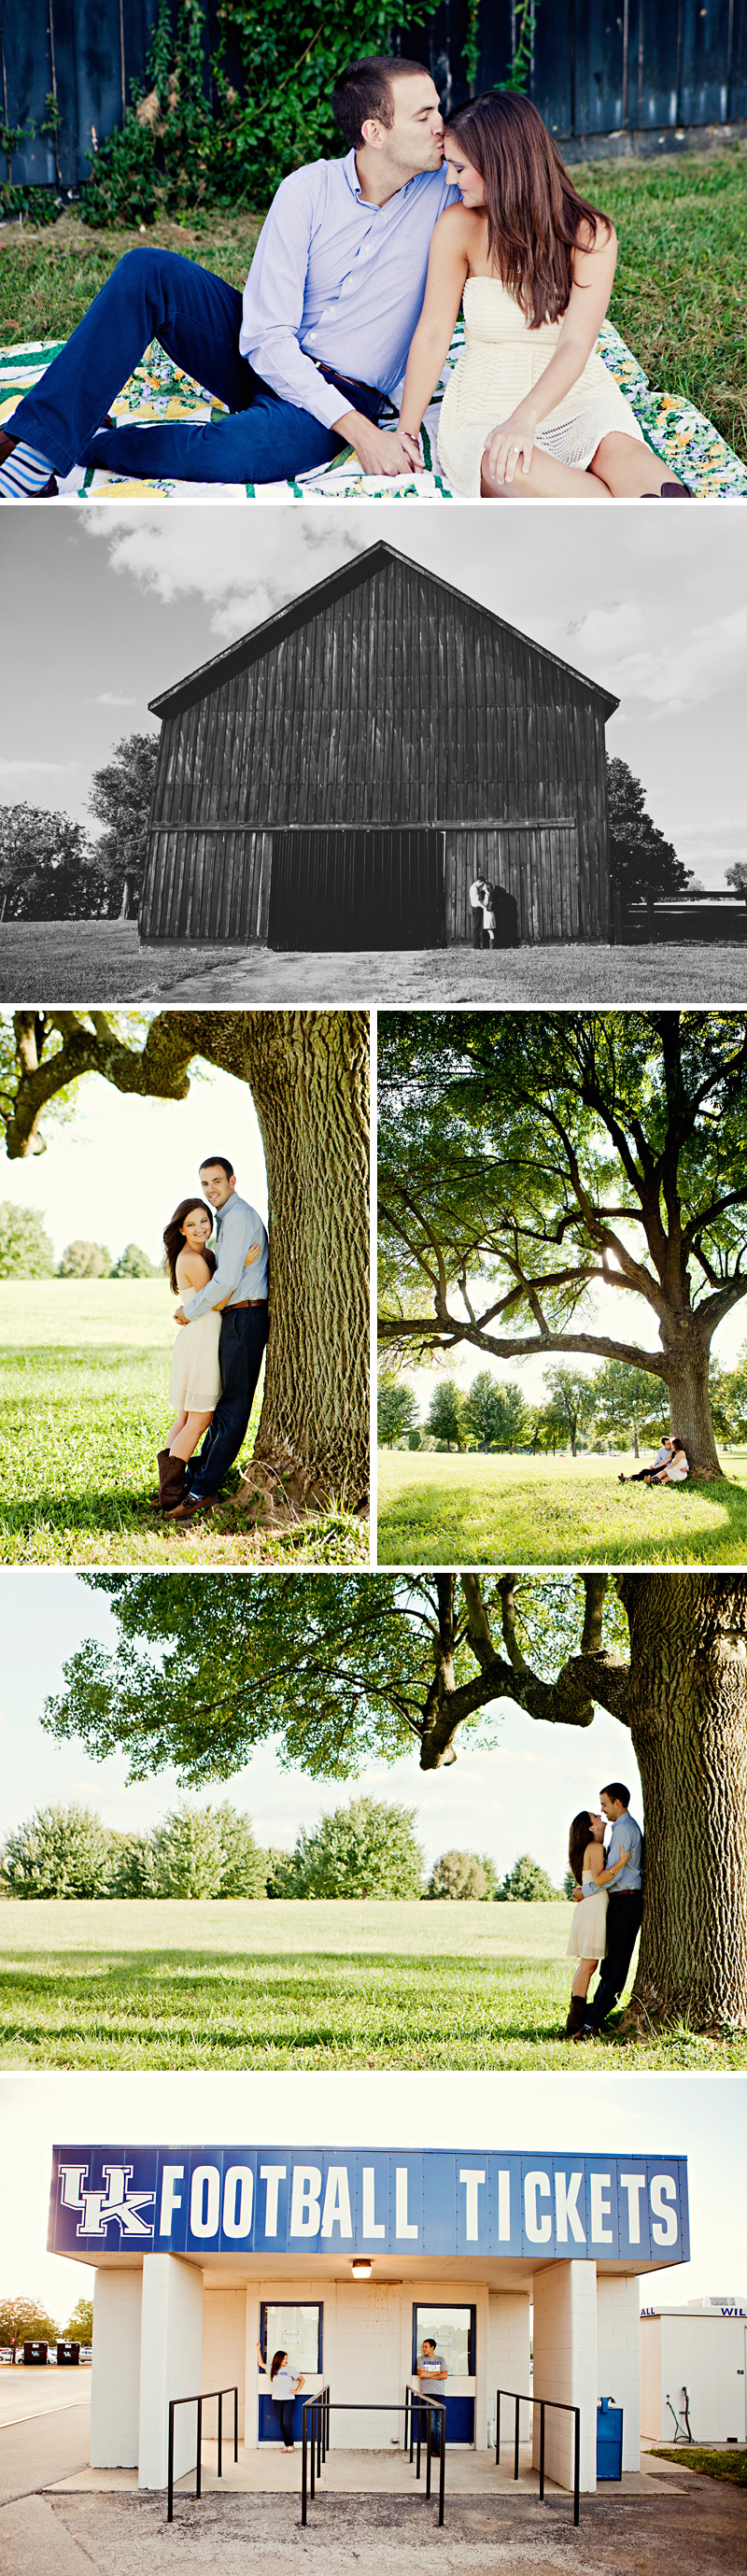 Lexington-Kentucky-Wedding-Photographerc002